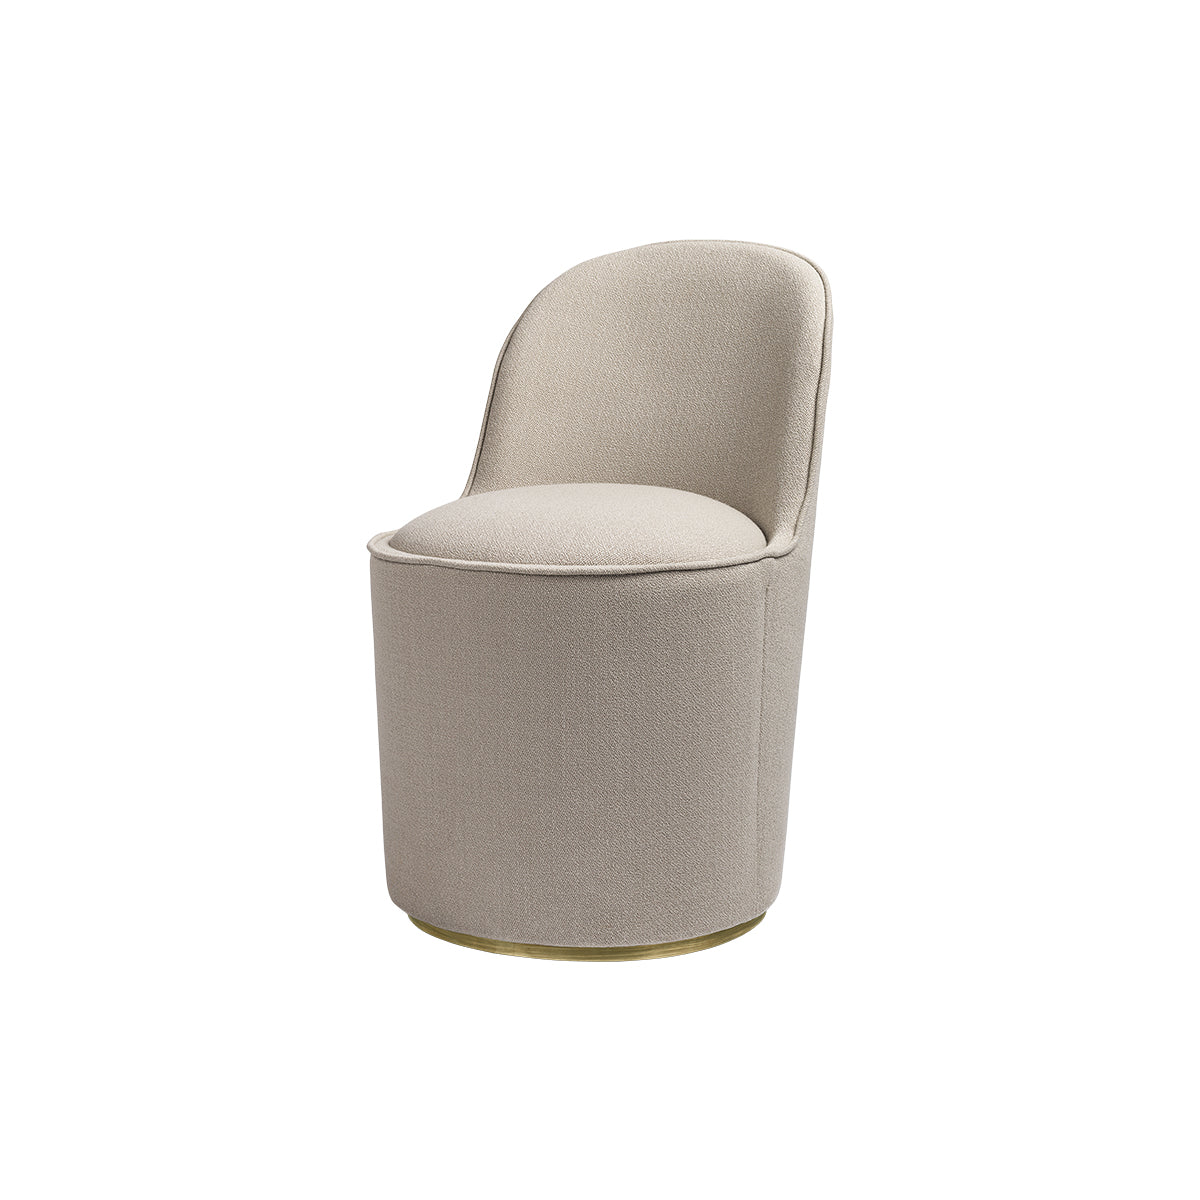 TAIL LOUNGE CHAIR - HIGH, Chairs//Fauteuils  - SORS